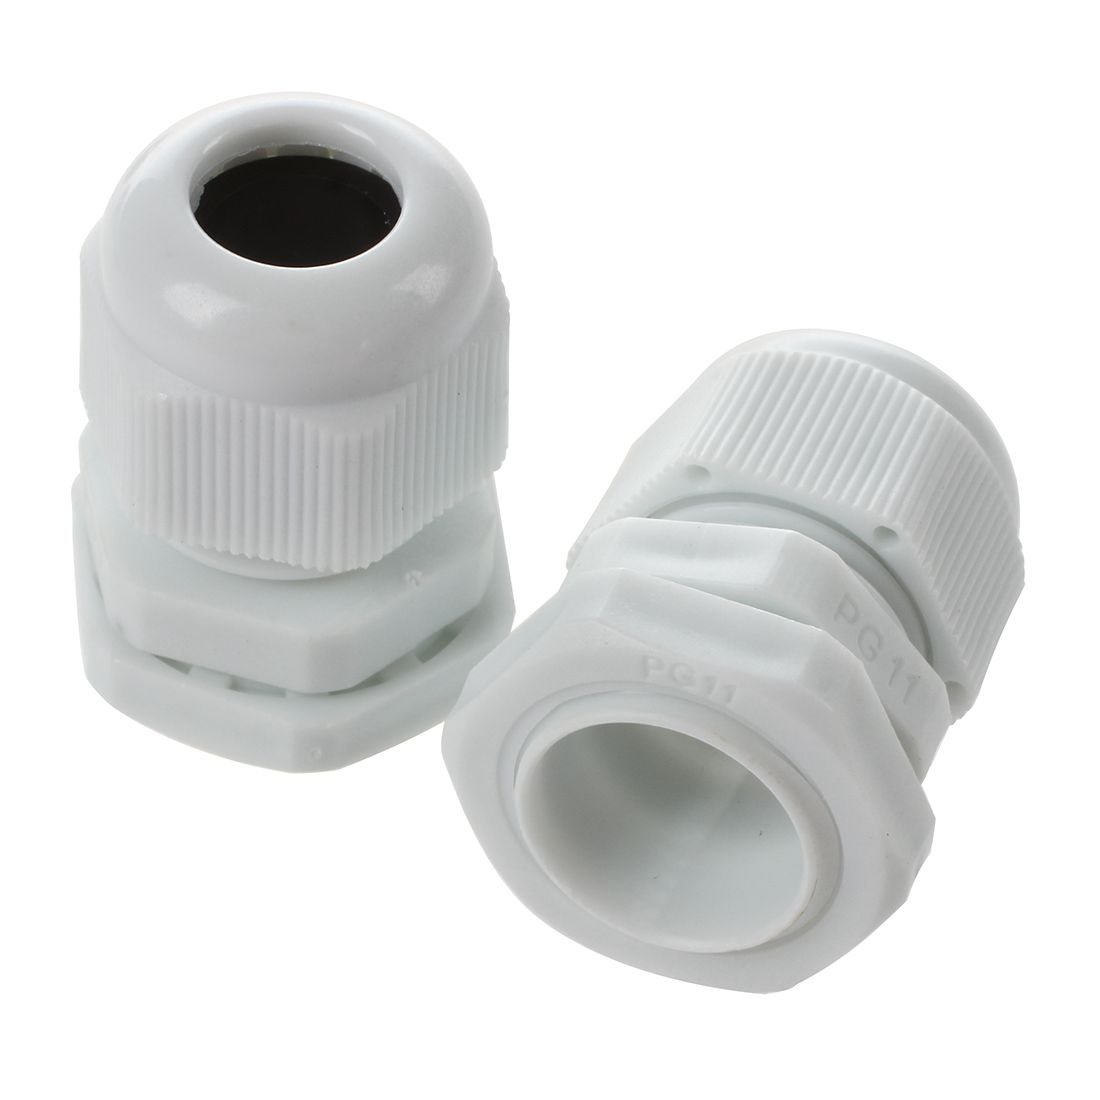 10 Pcs White Plastic PG11 Waterproof Cable Glands Connectors-in ...